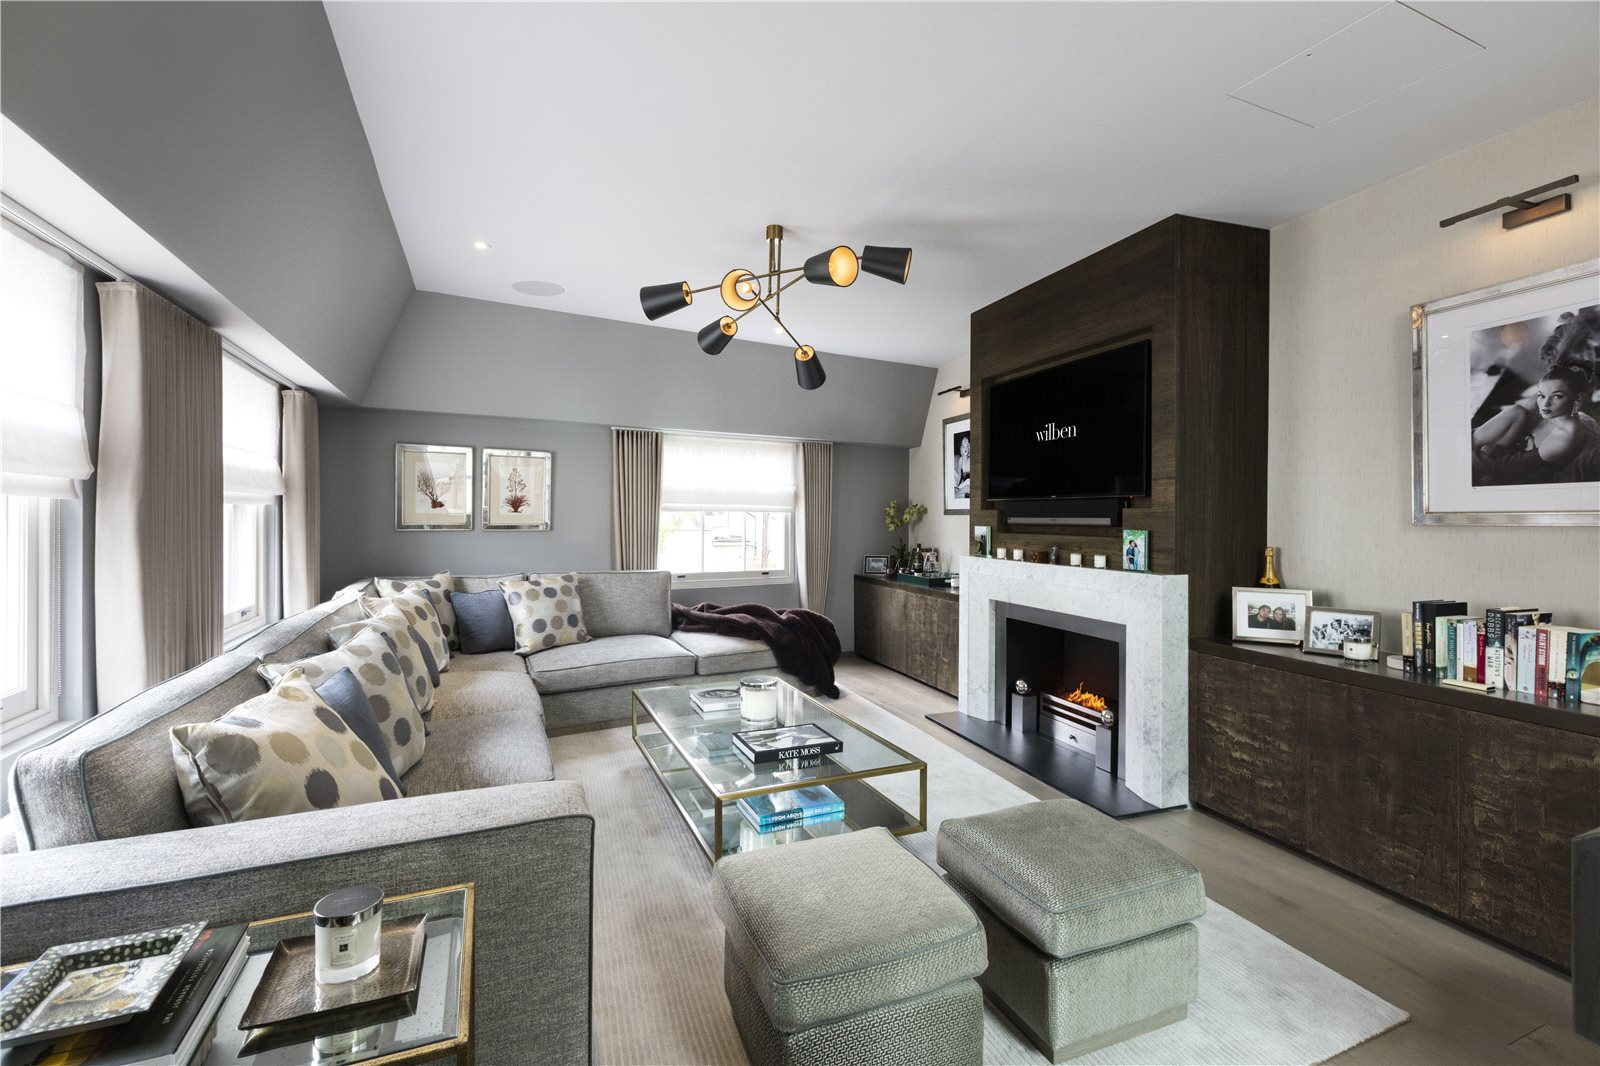 Single Family Home for Sale at Clareville Street, London, SW7 London, England